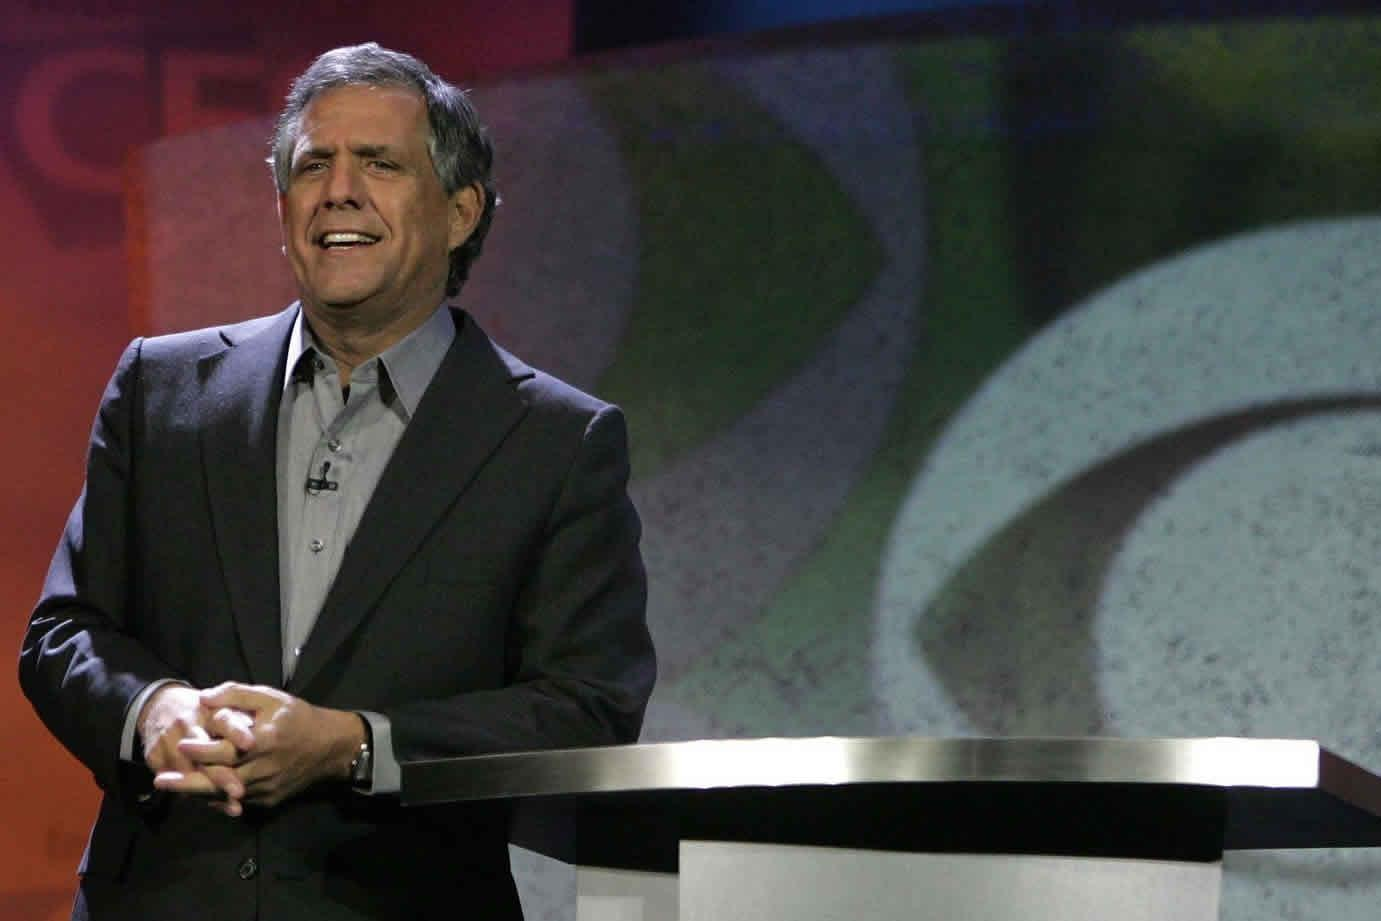 CBS CEO says the company is no longer in talks with Apple about streaming TV